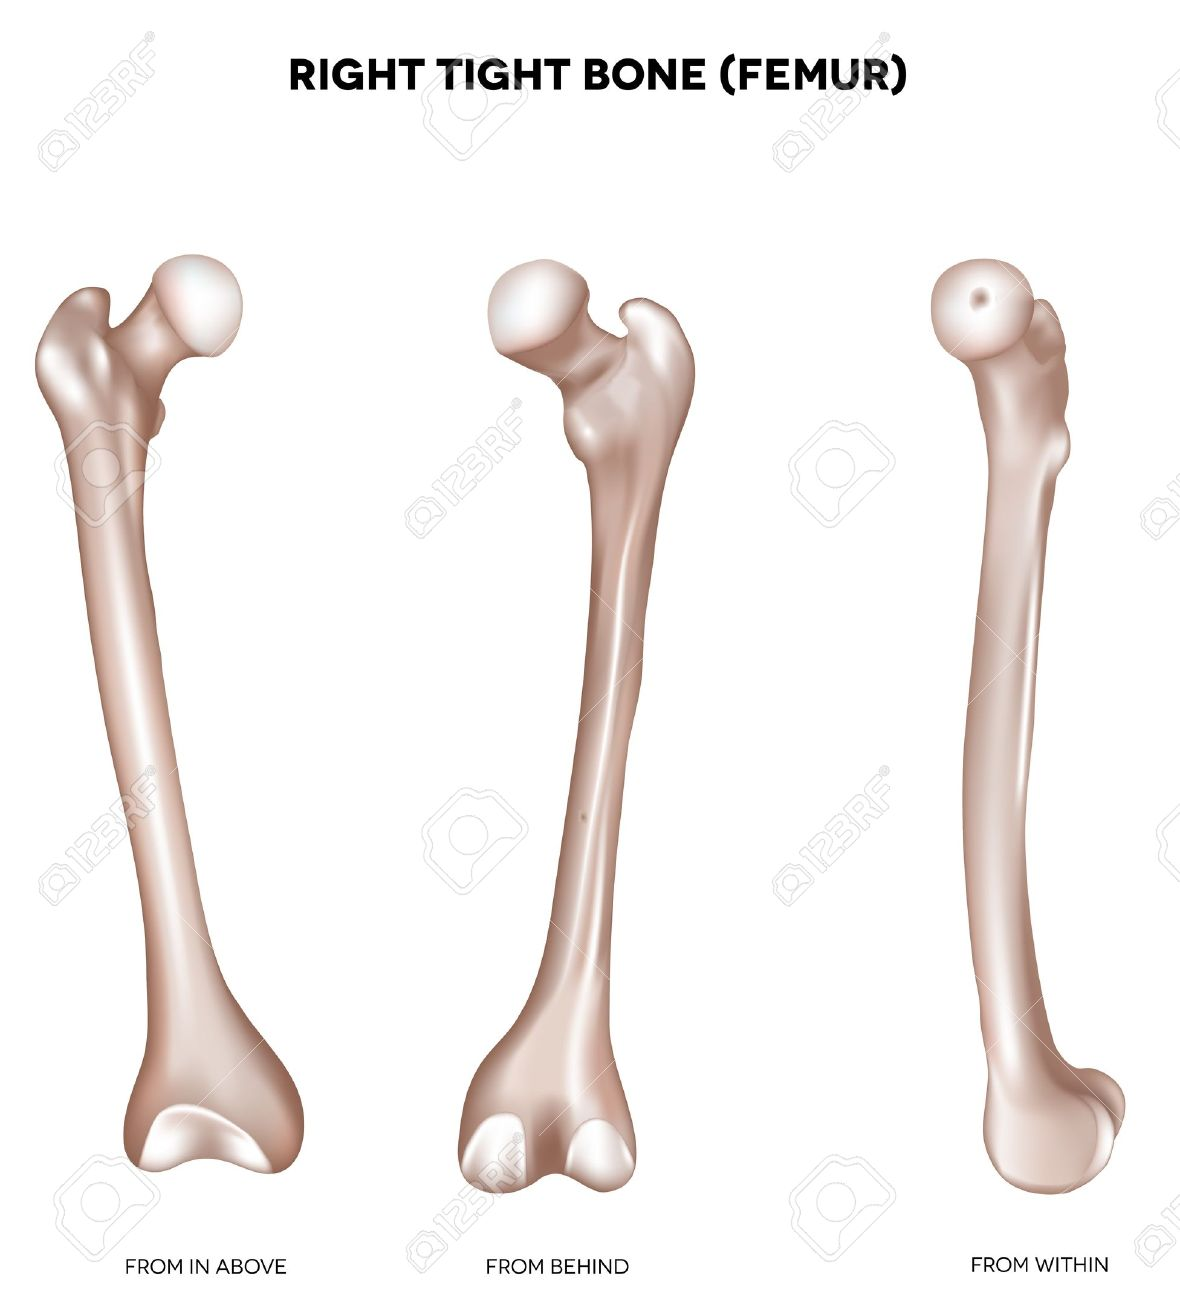 Right tight bone- Femur  Bone of the lower extremity  From above, behind and within  Detailed medical illustration  Isolated on a white background  Bright and clean design Stock Vector - 19890638